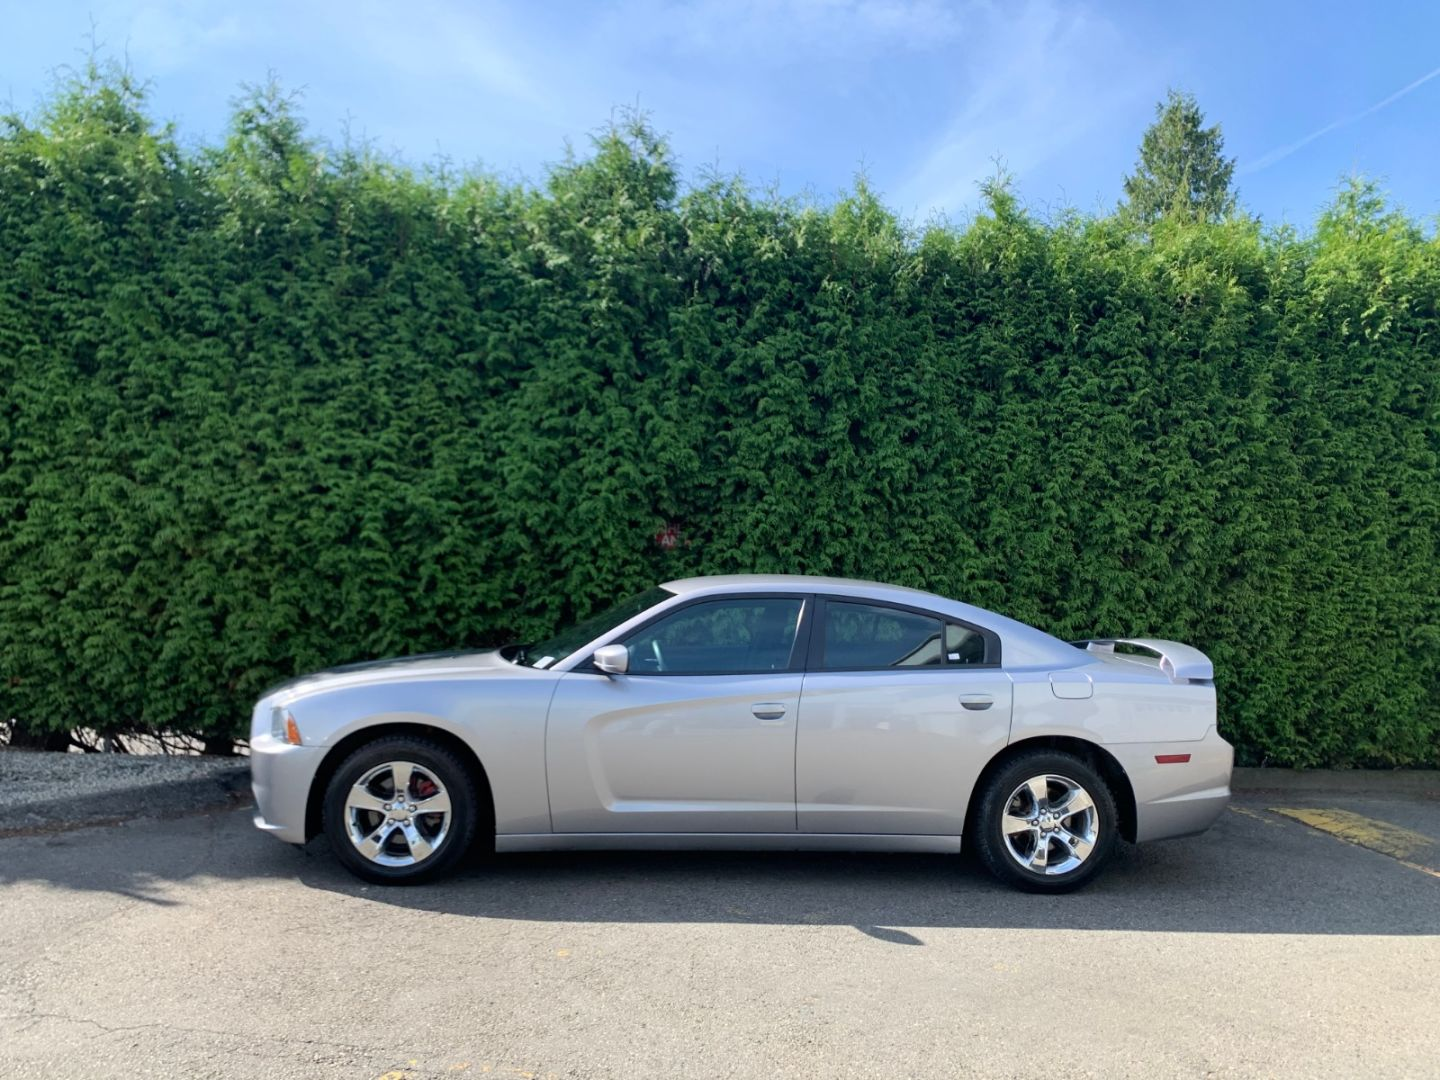 2013 Dodge Charger SE for sale in Surrey, British Columbia